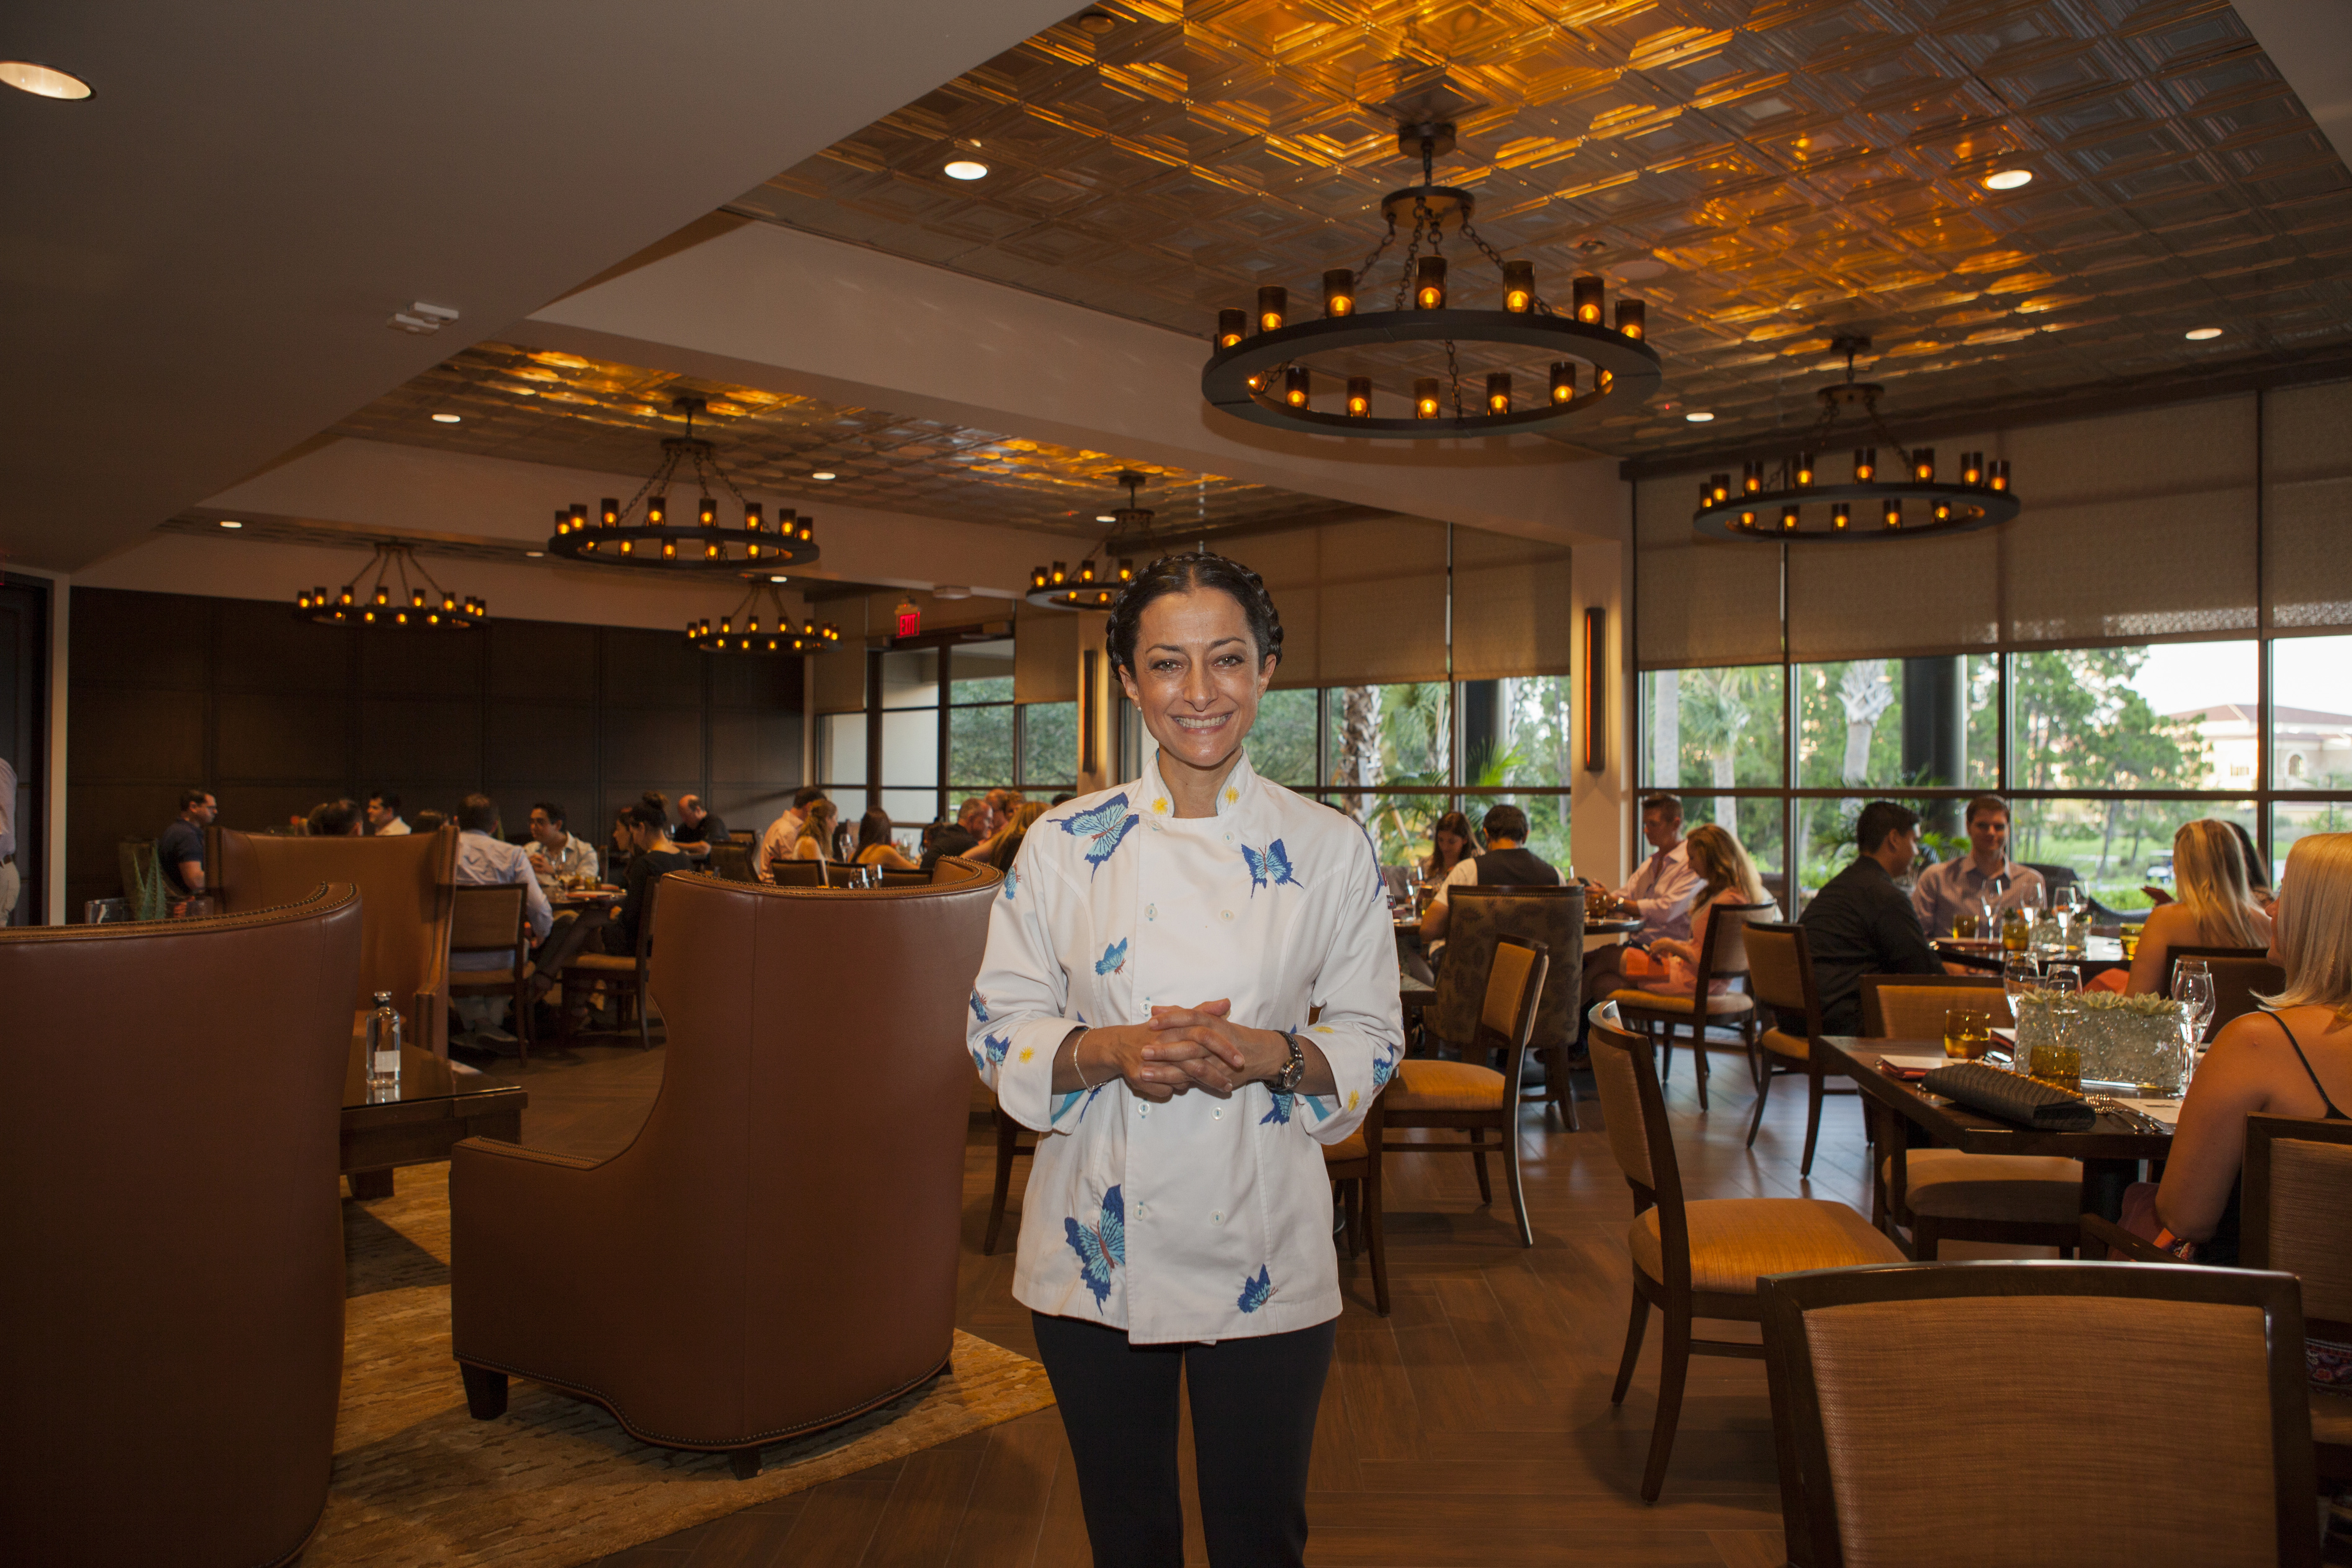 Chef Lula and Casa Dragones at Four Seasons Orlando